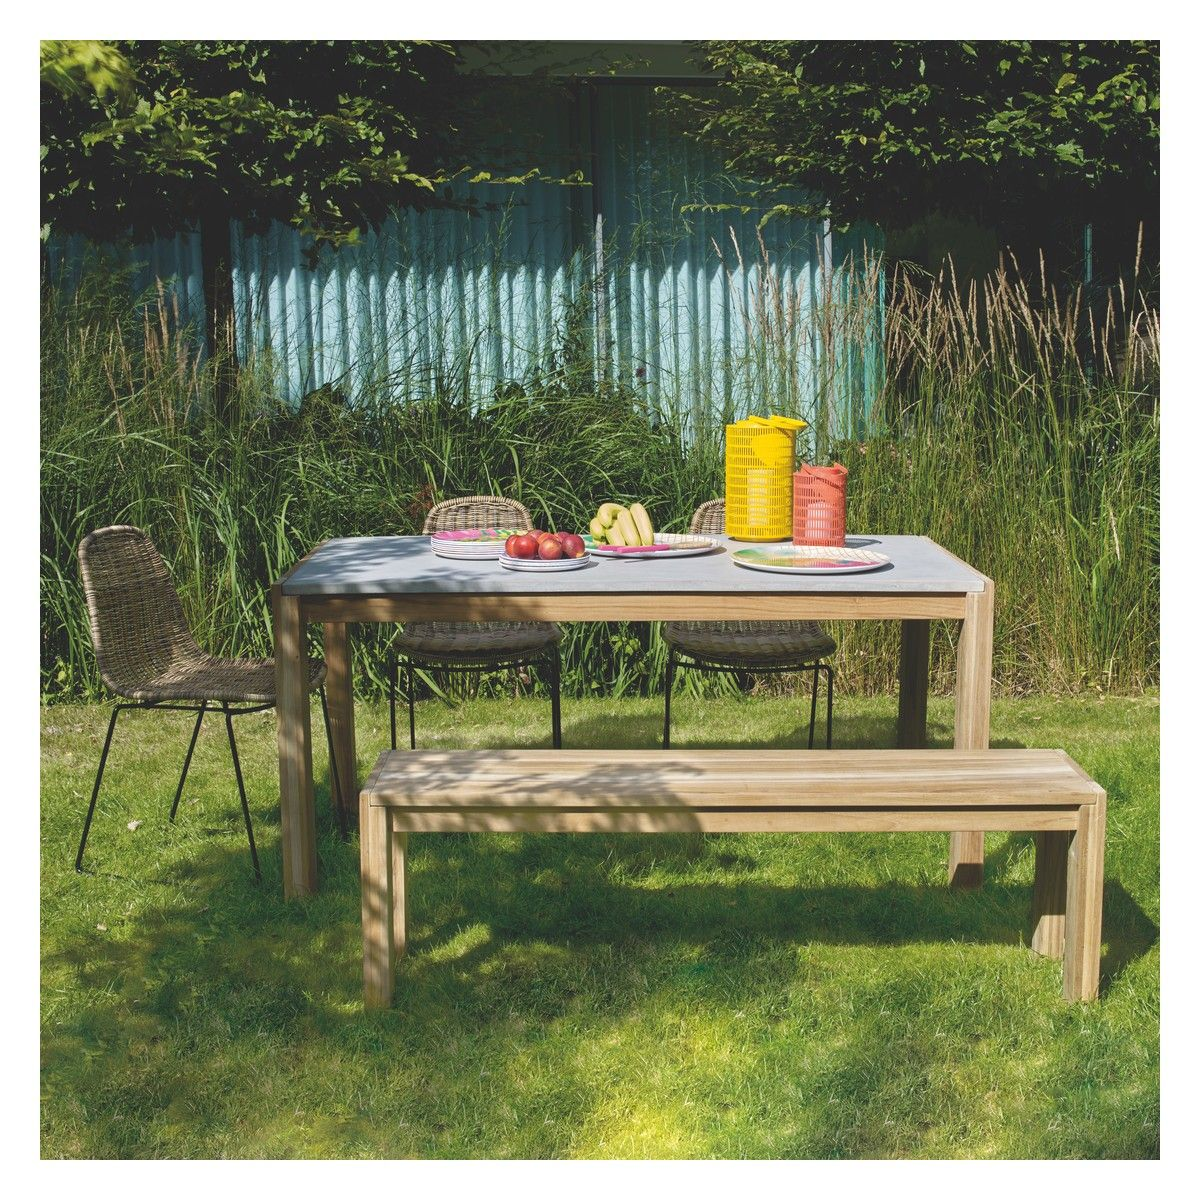 coniston concrete and teak 6 seat garden table buy now at